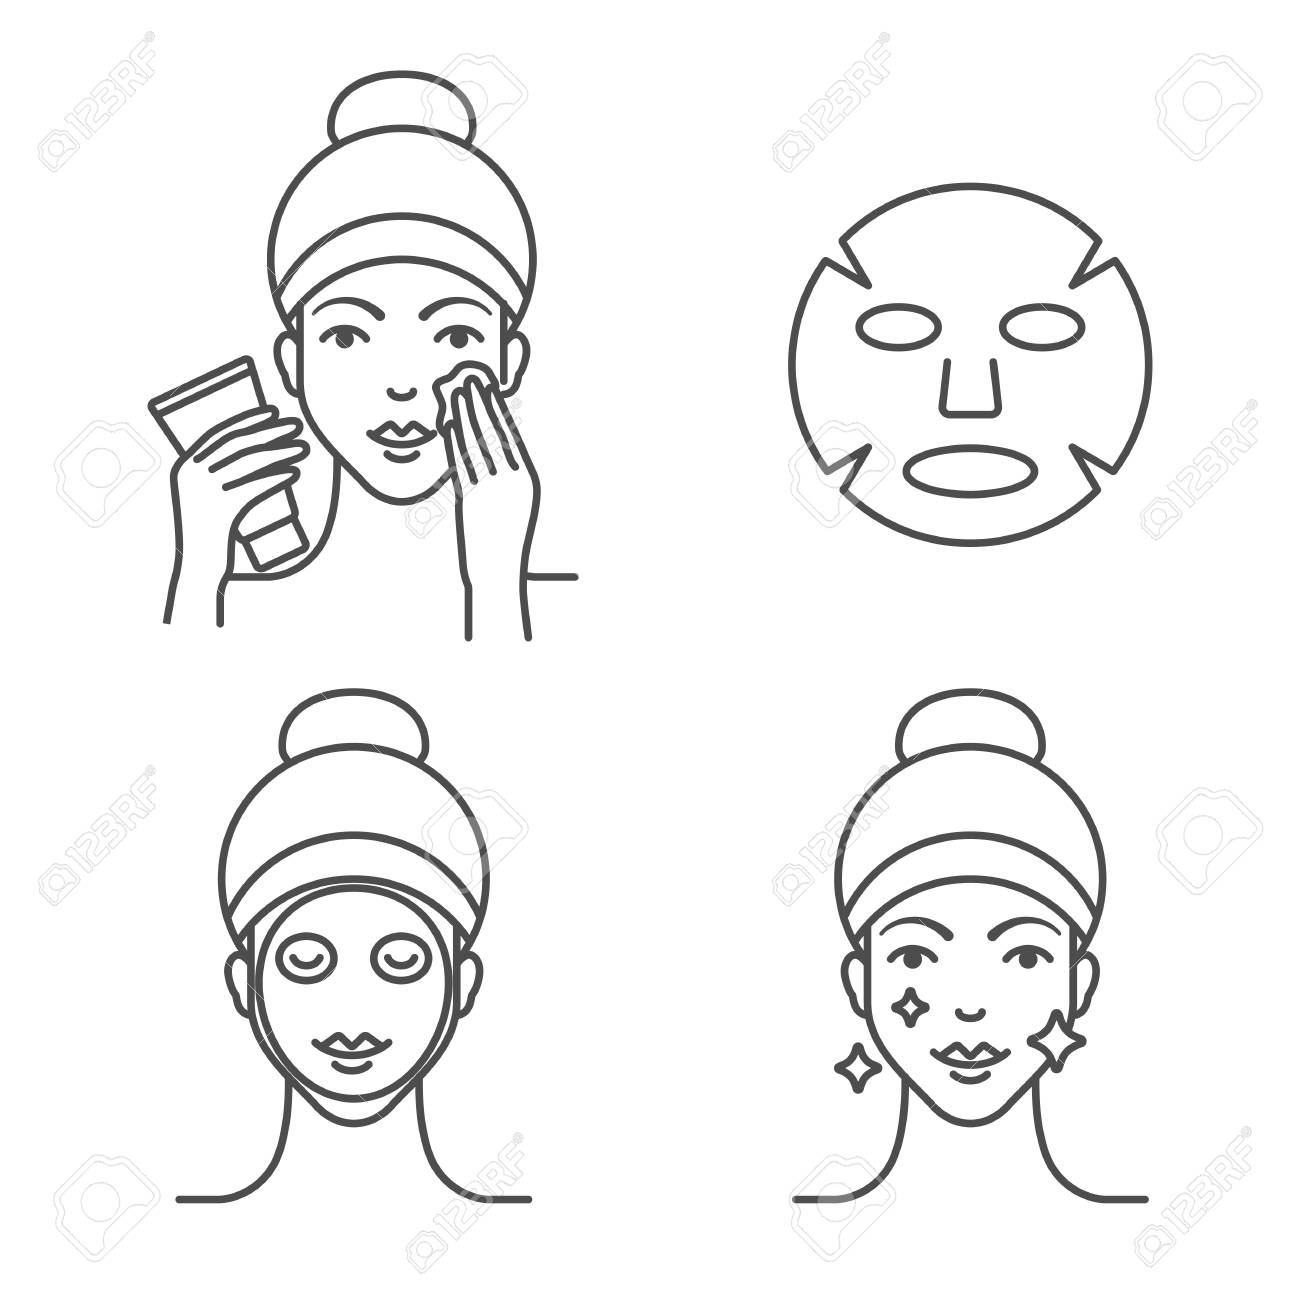 How to use a sheet mask, steps. - 110023238